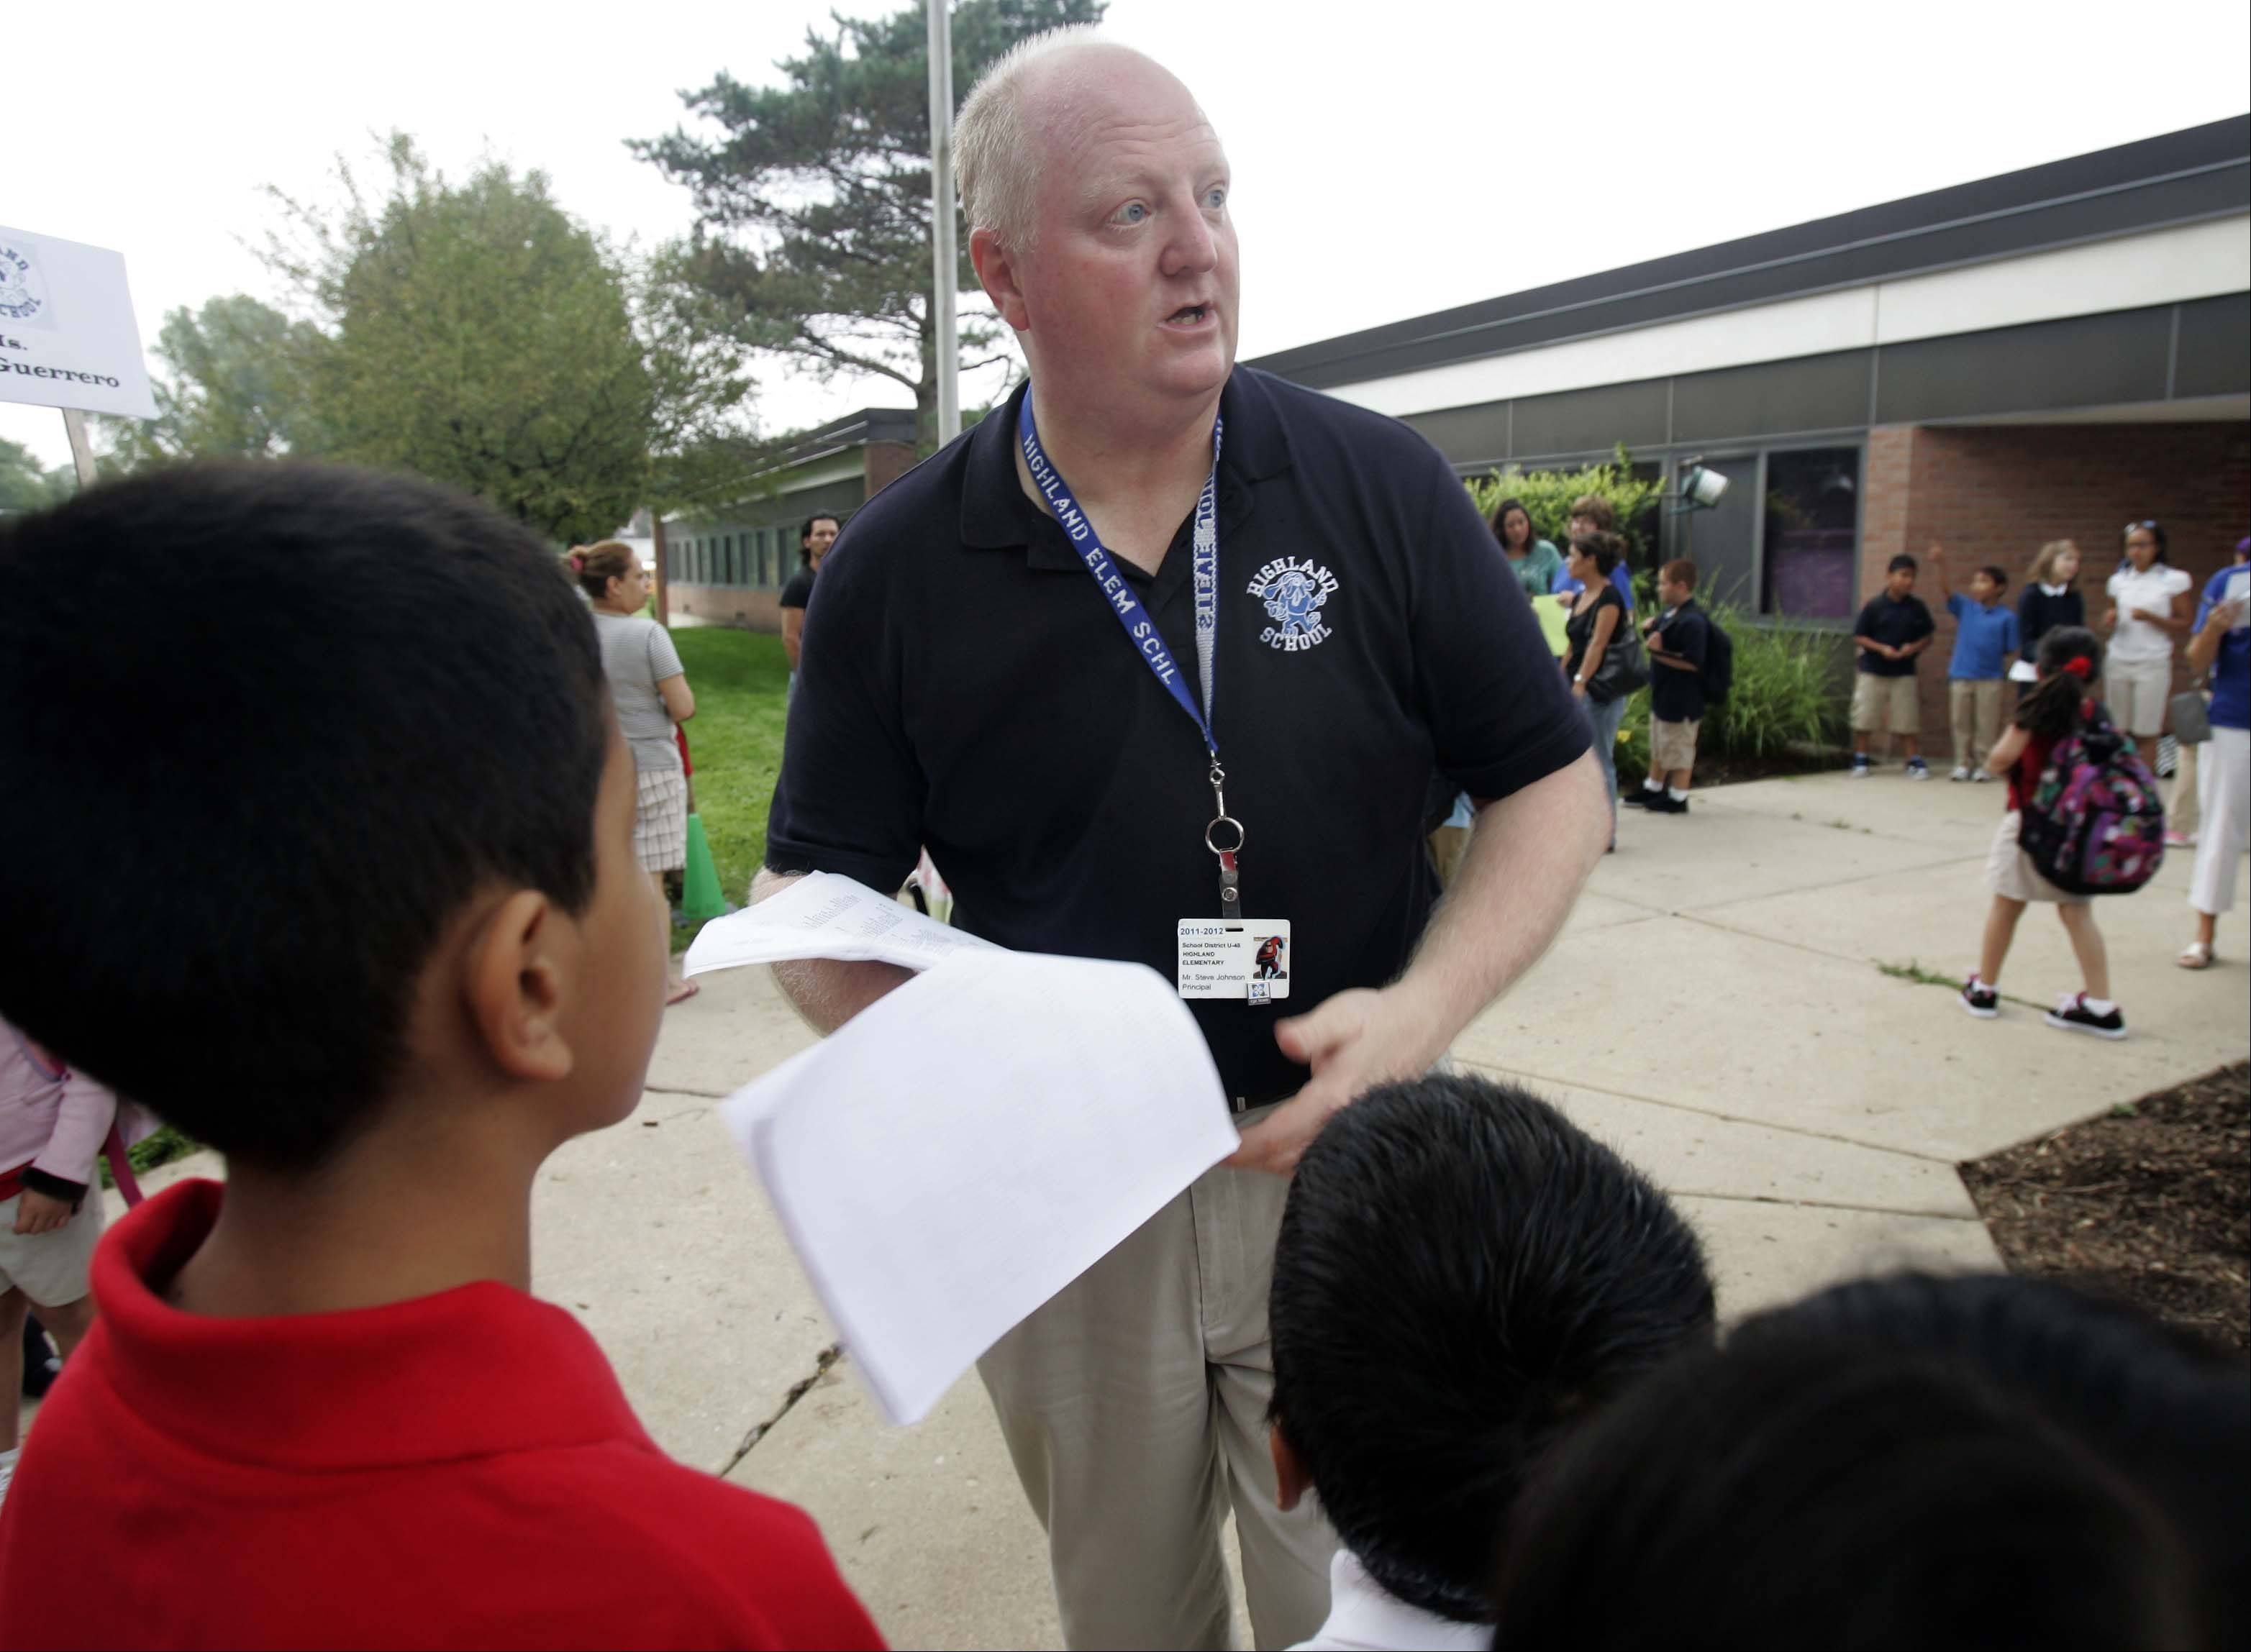 Principal Steve Johnson makes sure that the students are headed to the correct classes during first day of school at Highland Elementary School in Elgin Wednesday, August 24, 2011.